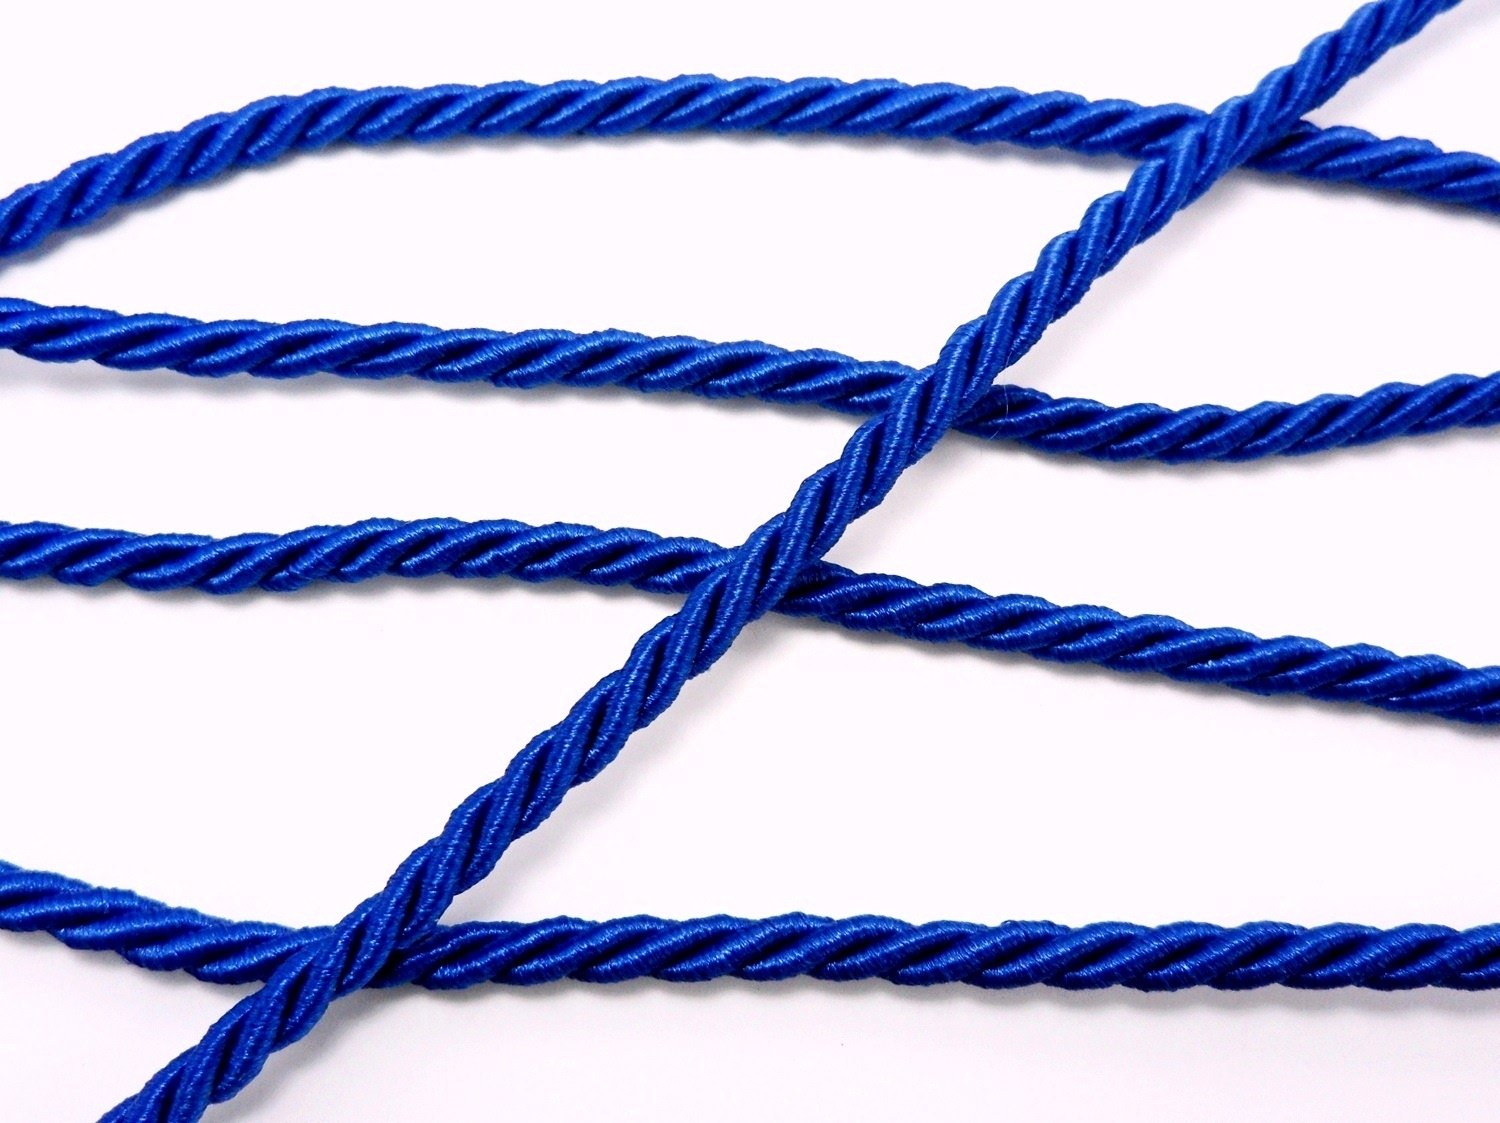 Royal Blue Shiny Twist Cord Choker Thread Twine String Rope Supplies Piping Anchor Bracelet Chain 3 Yards DIYcraft 34